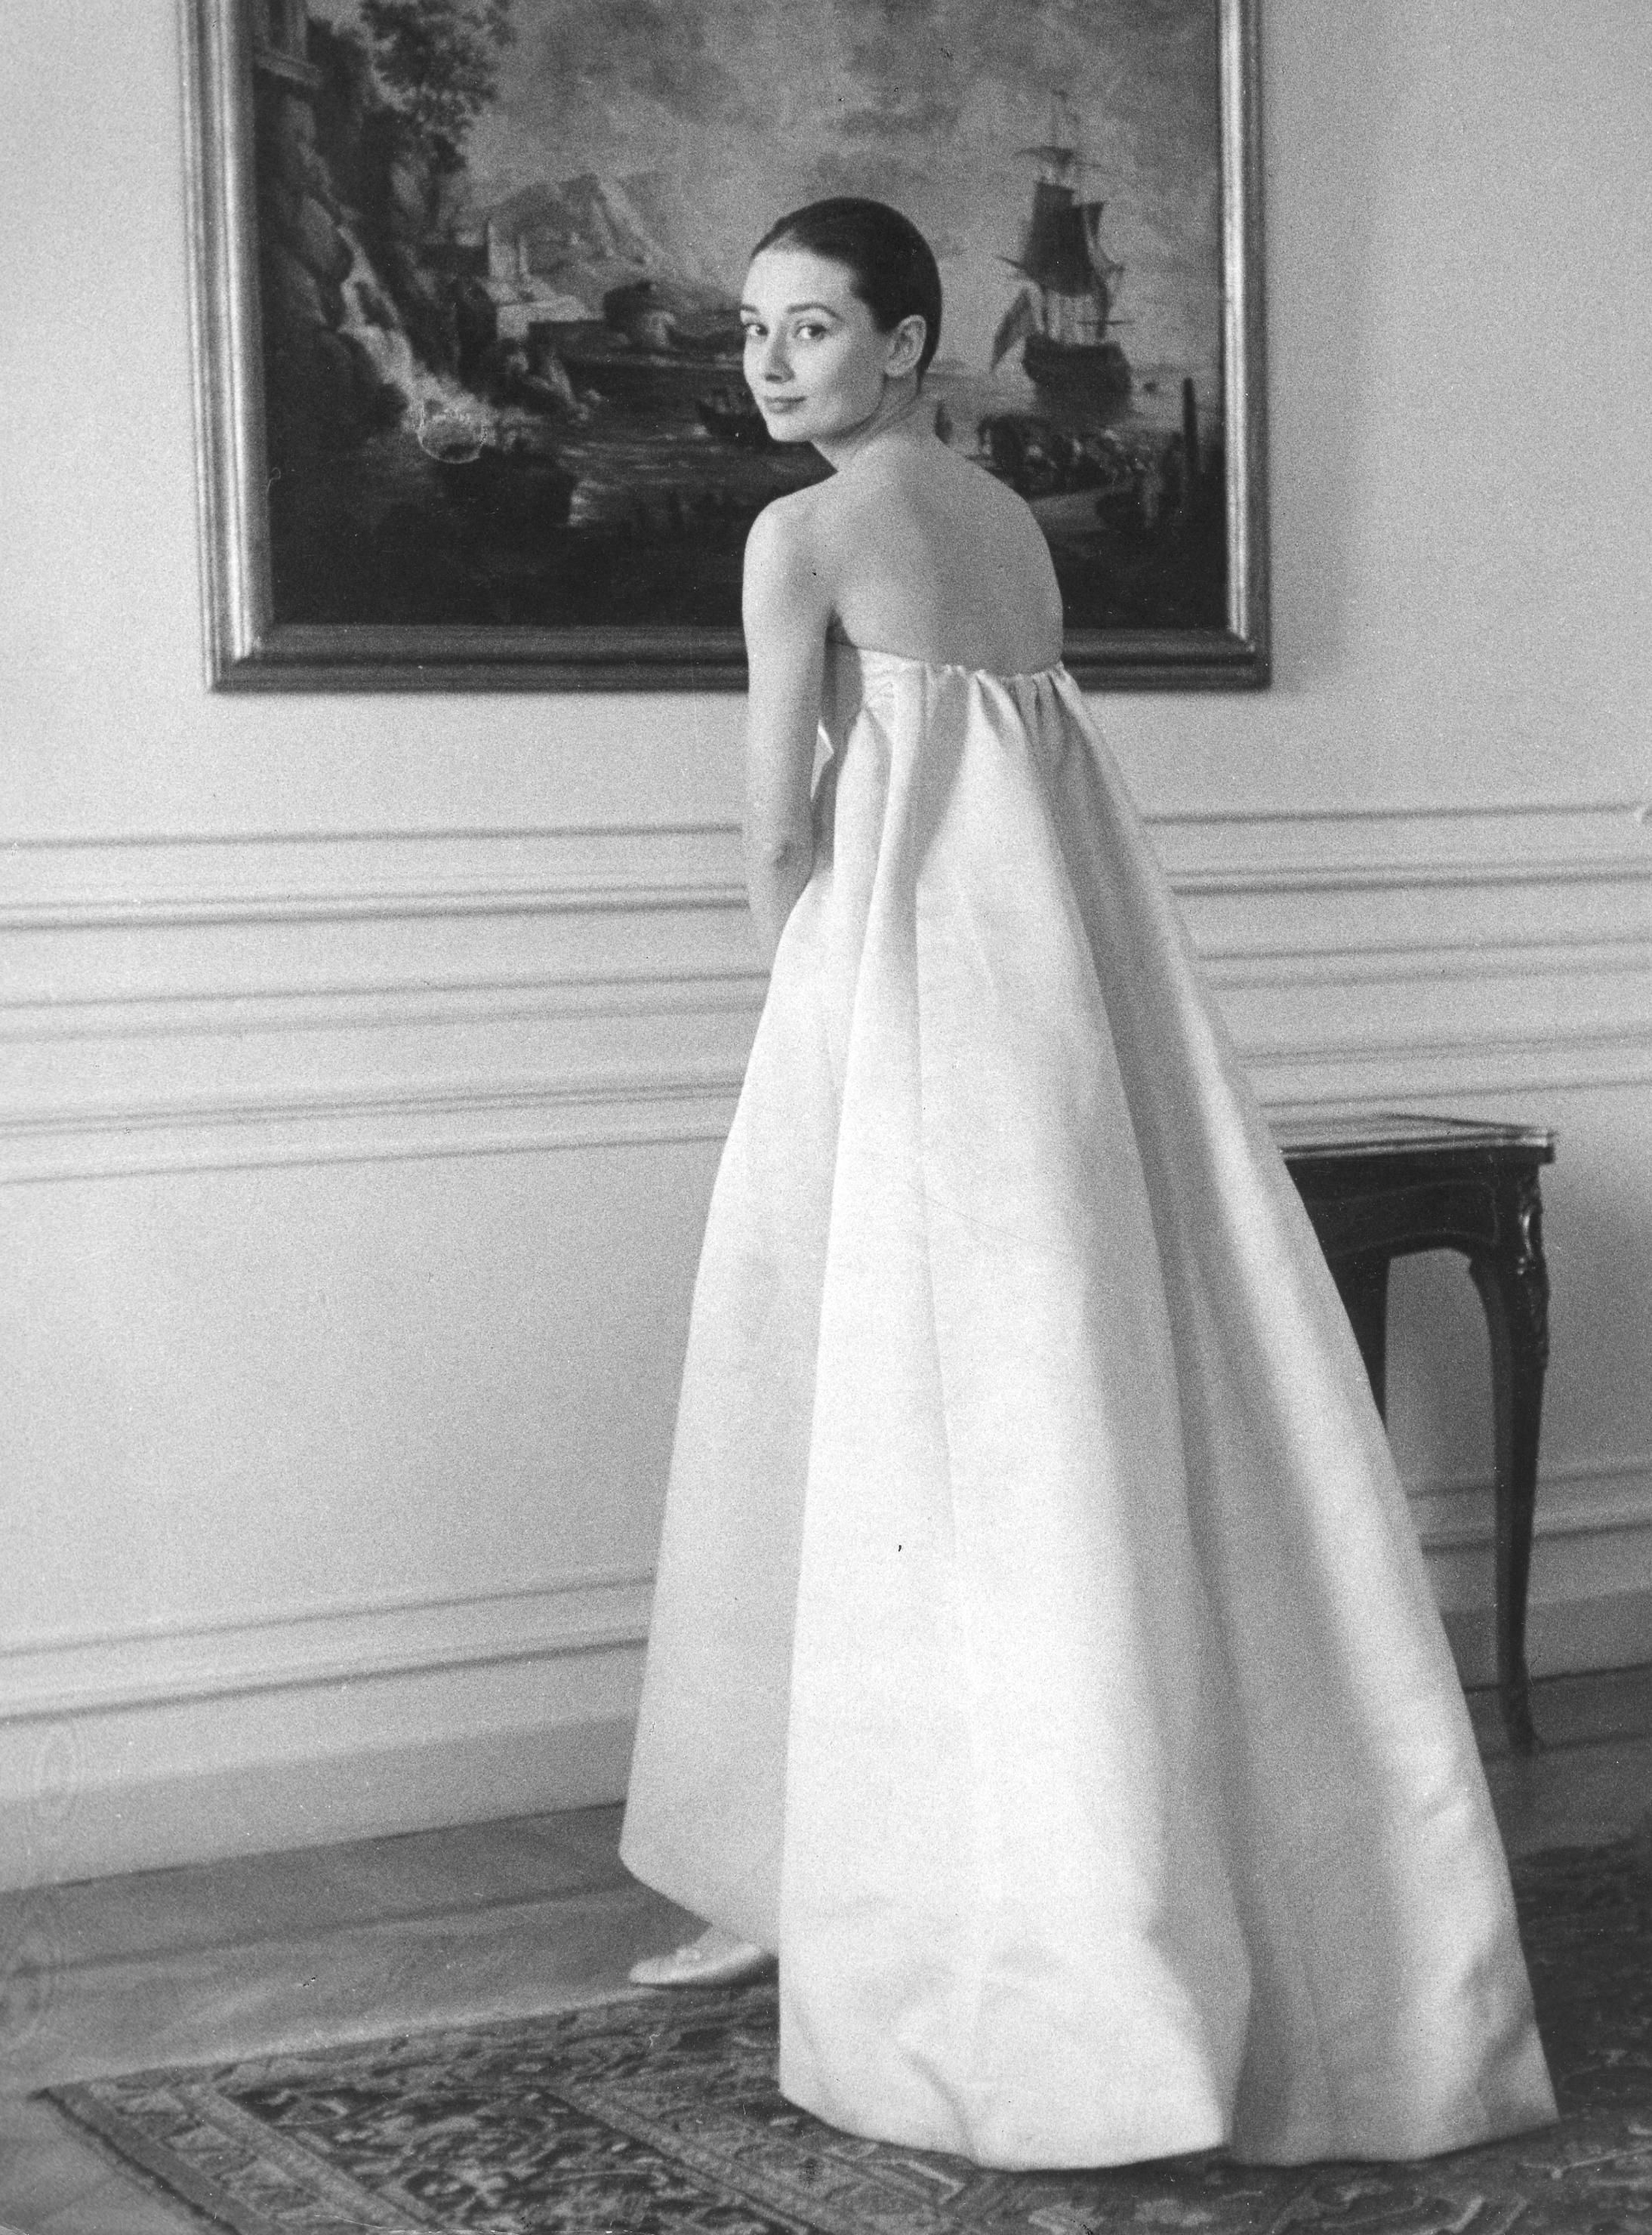 f57mb5 audrey hepburn  1929 1993 british film actress at the givenchy studio about 1957 image shot 1957 exact date unknown